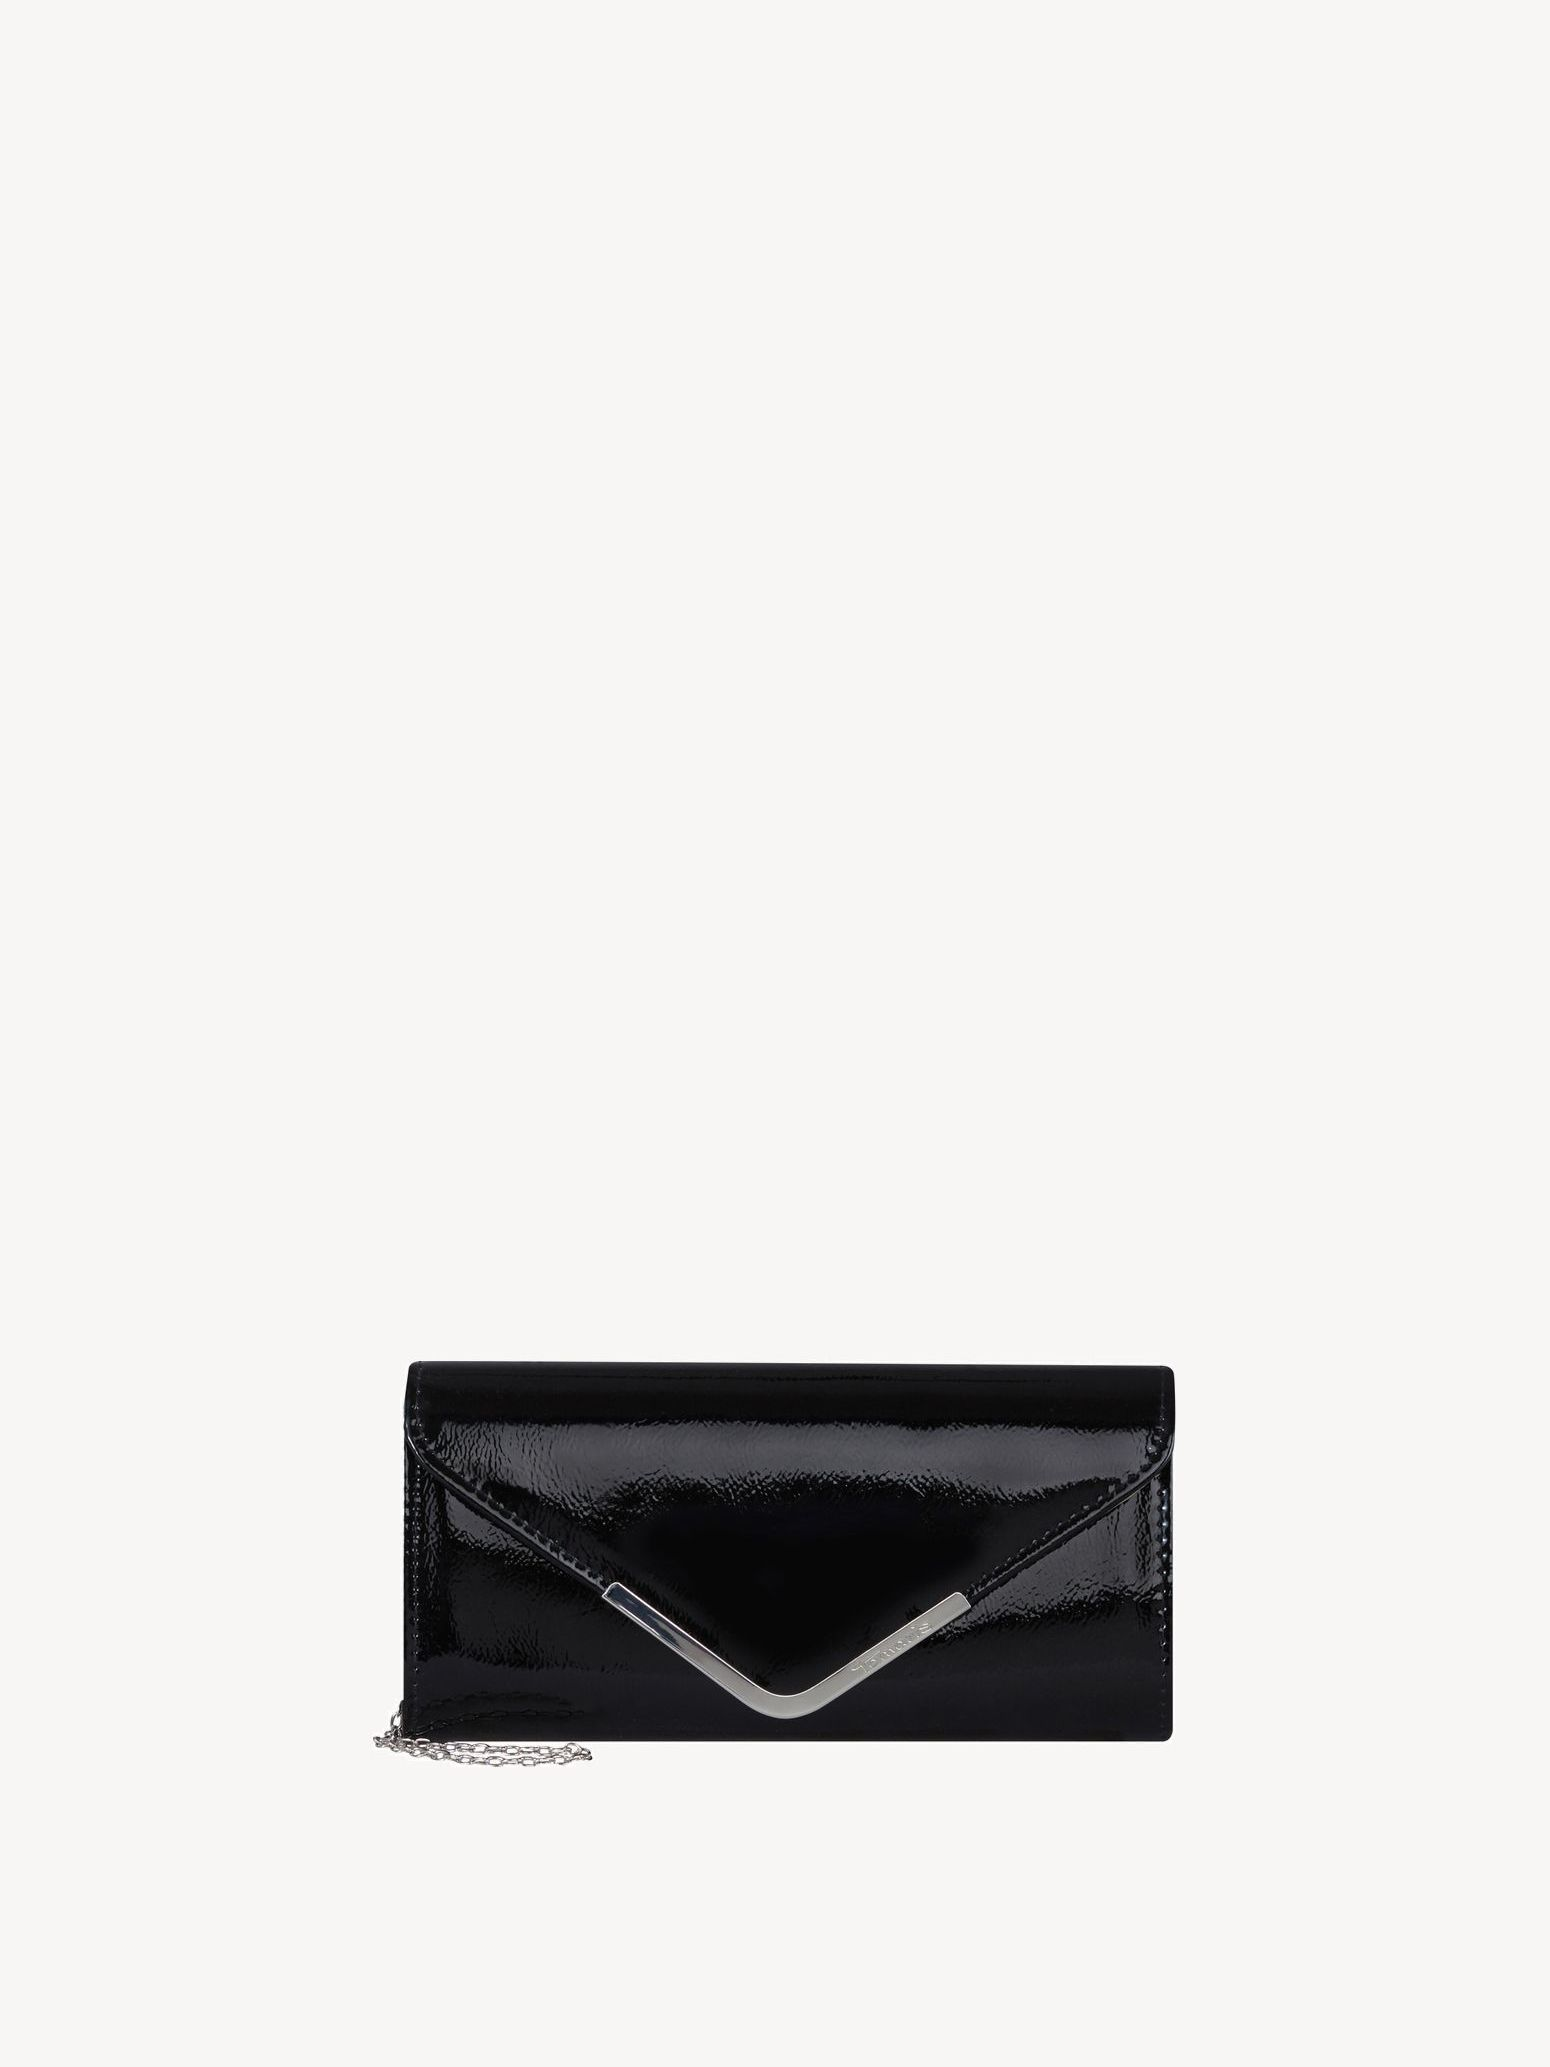 Clutch bag - black, black, hi-res